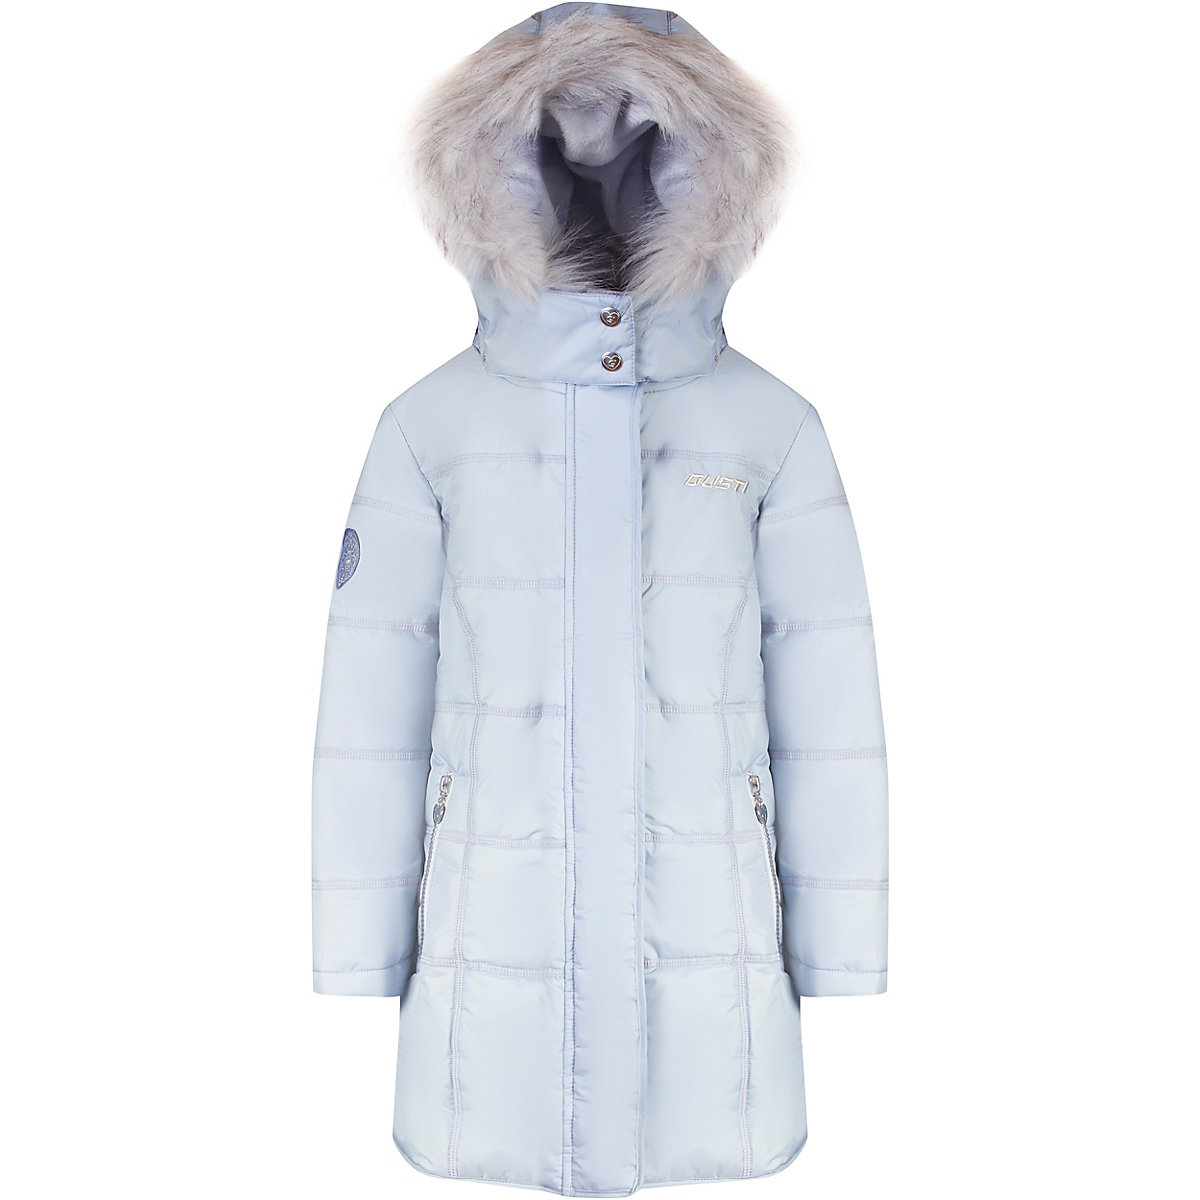 GUSTI Down & Parkas 9511916 jacket for girls winter outerwear children jackets boys clothing jackets